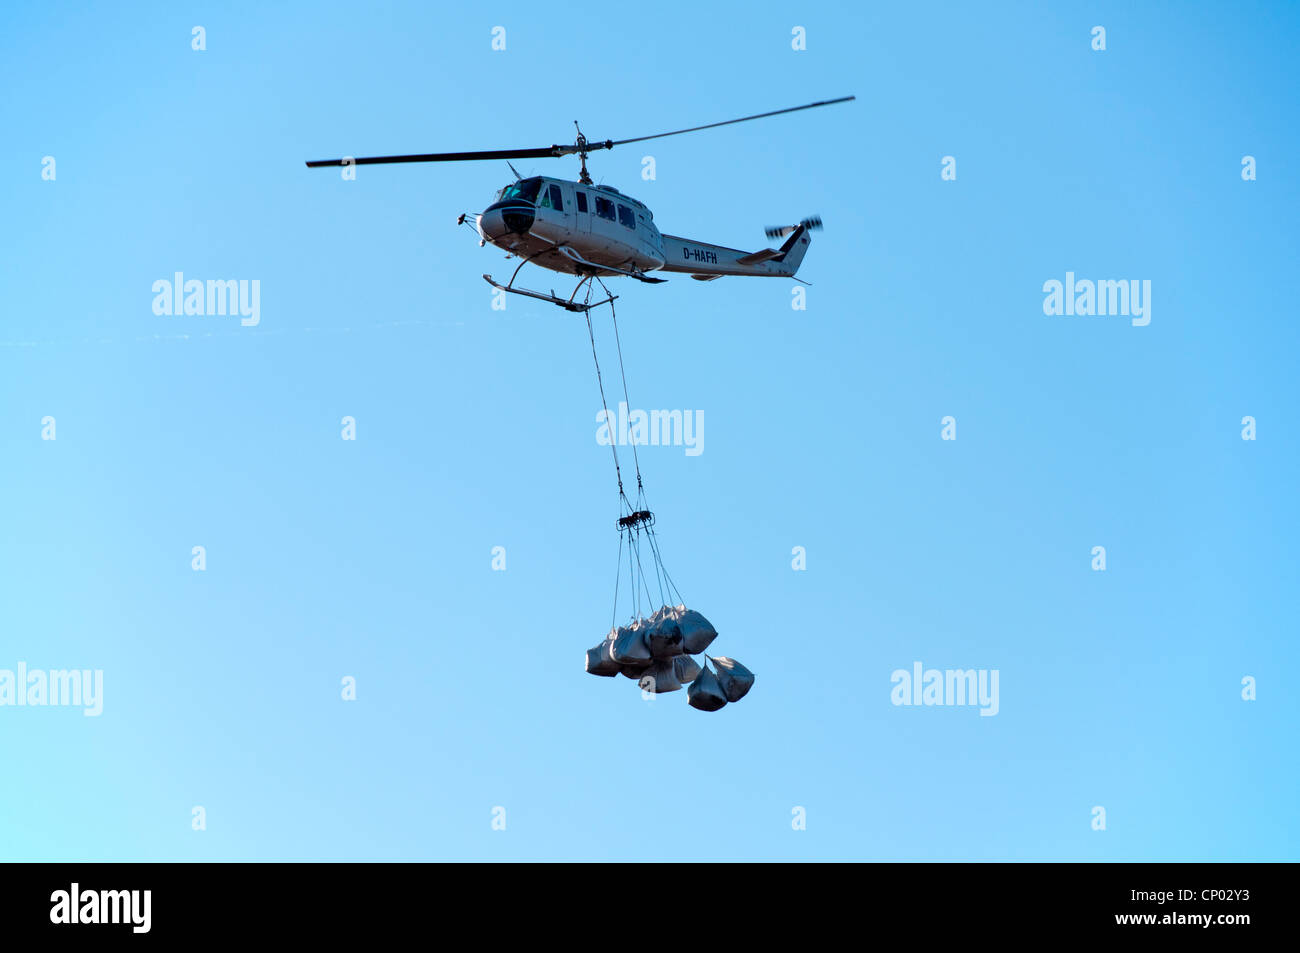 huey helicopter restoration with Stock Photo Bell 205a 1 Helicopter With Underslung Load Over Bleaklow Hill Peak 47945495 on cactusairforce as well Military Tank Engines For Sale in addition History additionally Uh 1 Huey In Vietnam likewise Magazine.